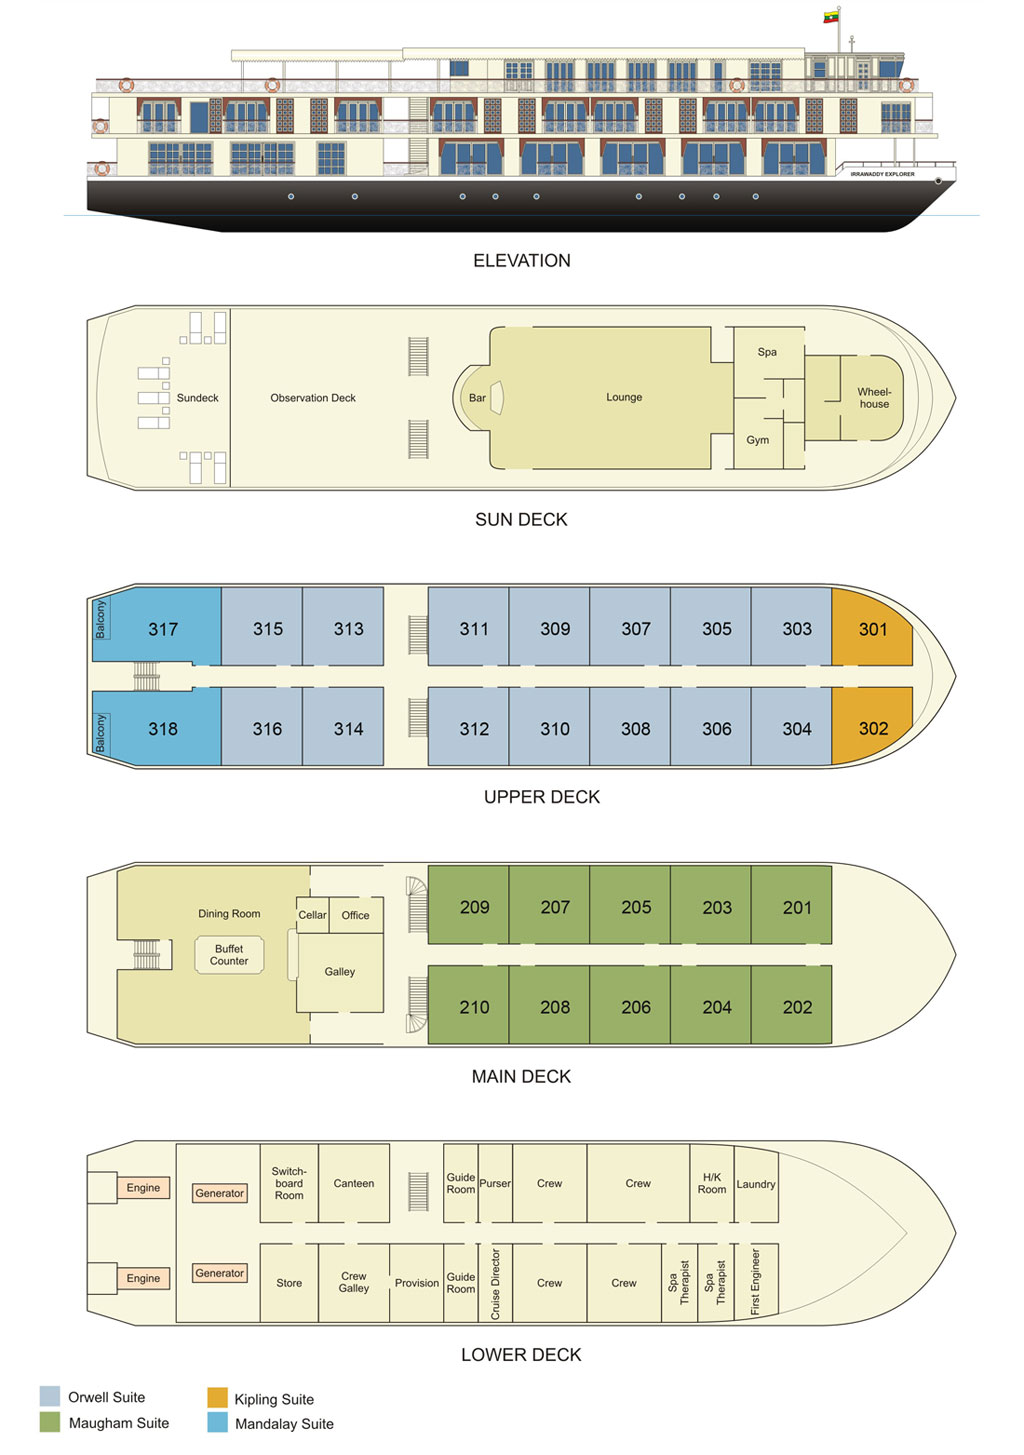 Cabin layout for Irrawaddy Explorer